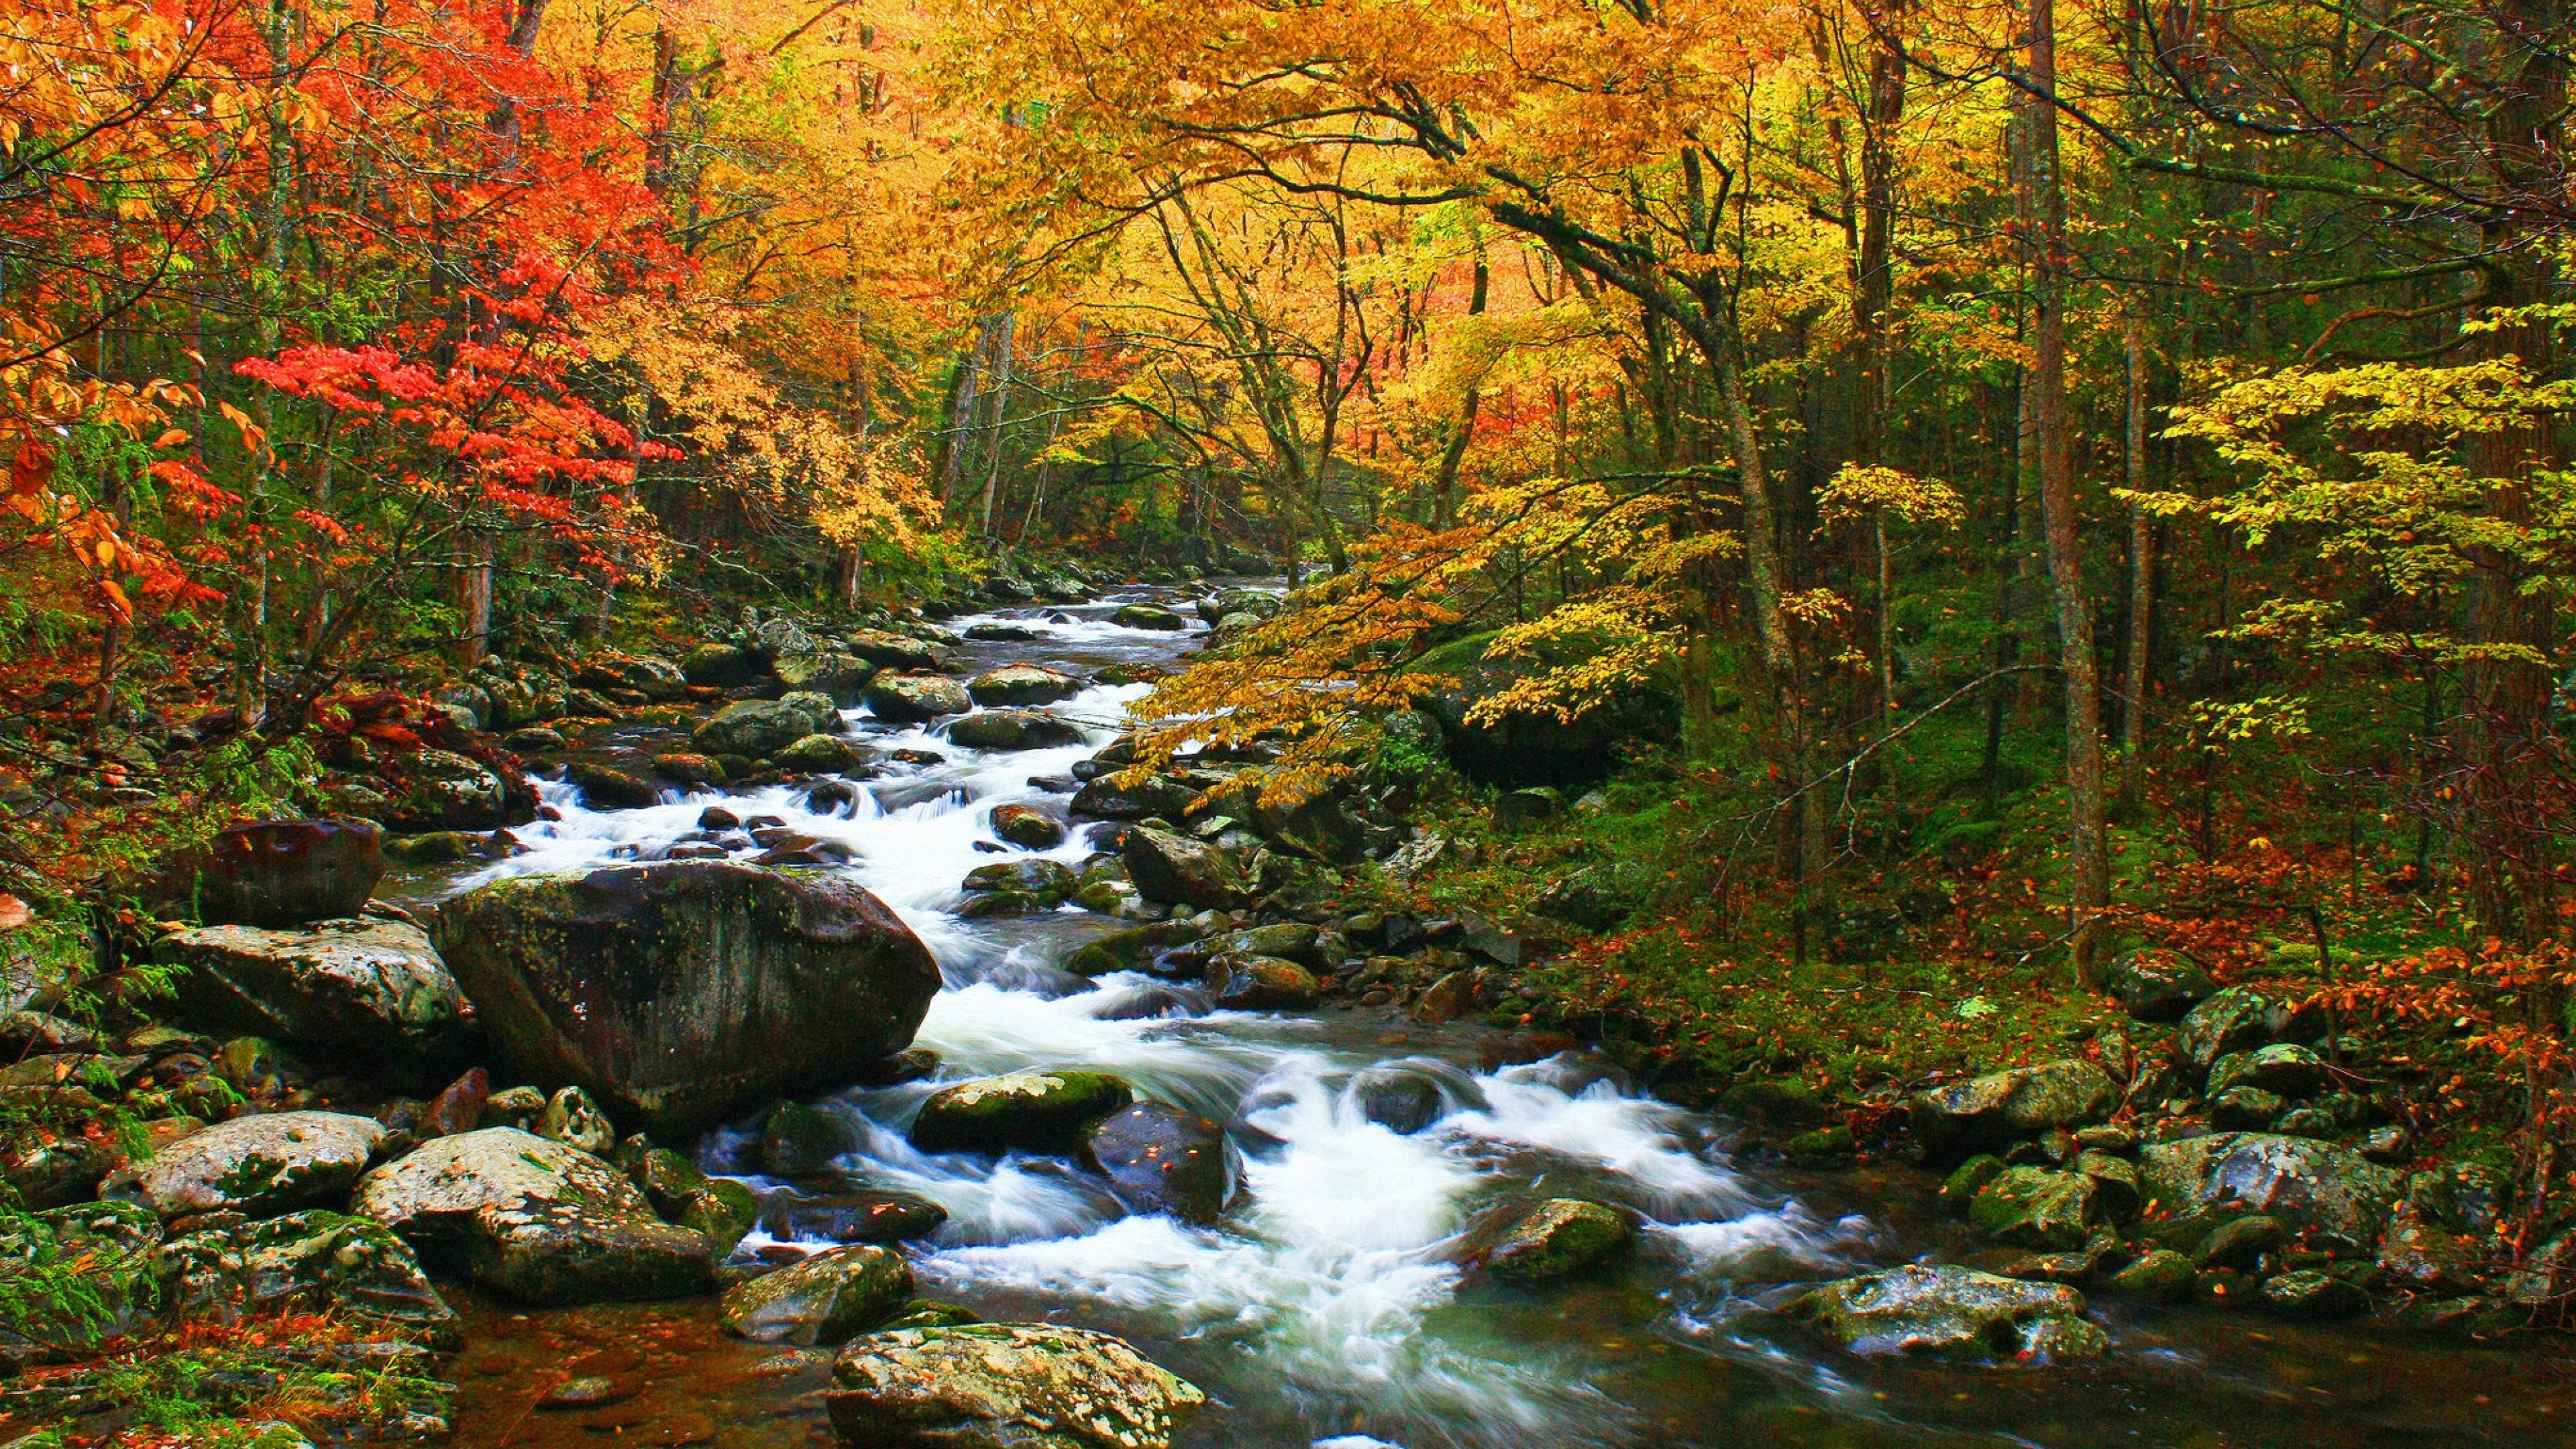 Waterfall and creek running through orange and red trees in Great Smoky Mountains National Park